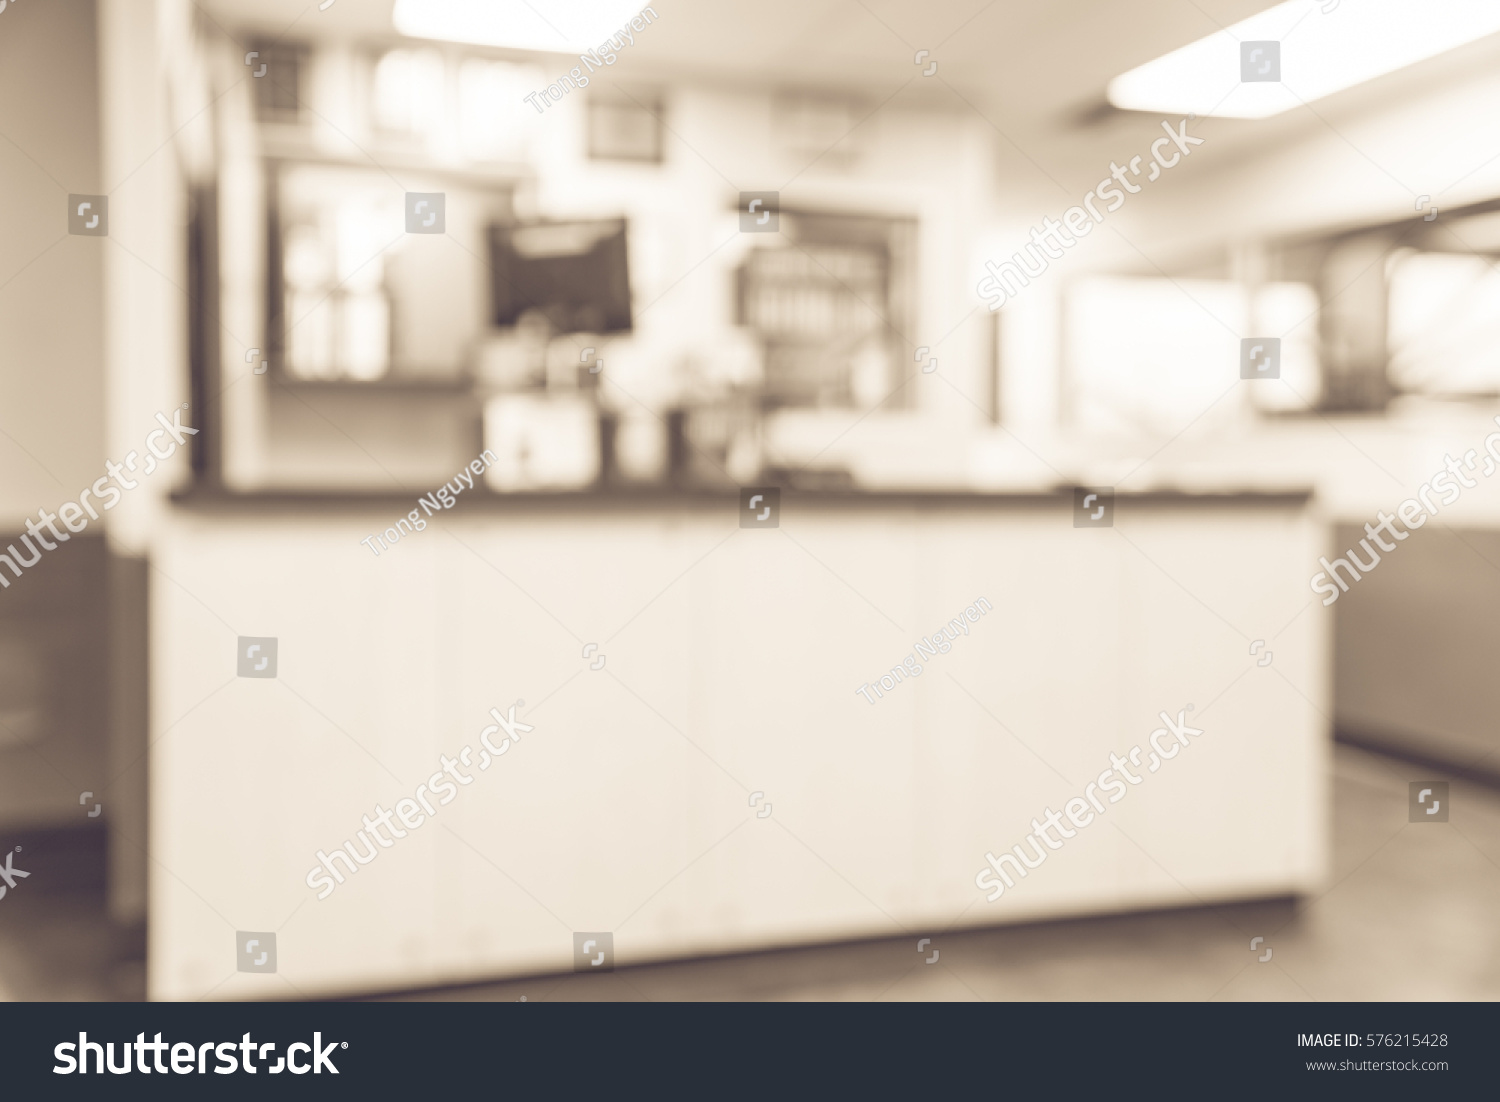 Blurred Image Empty Office Counter Service Stock Photo Edit Now 576215428